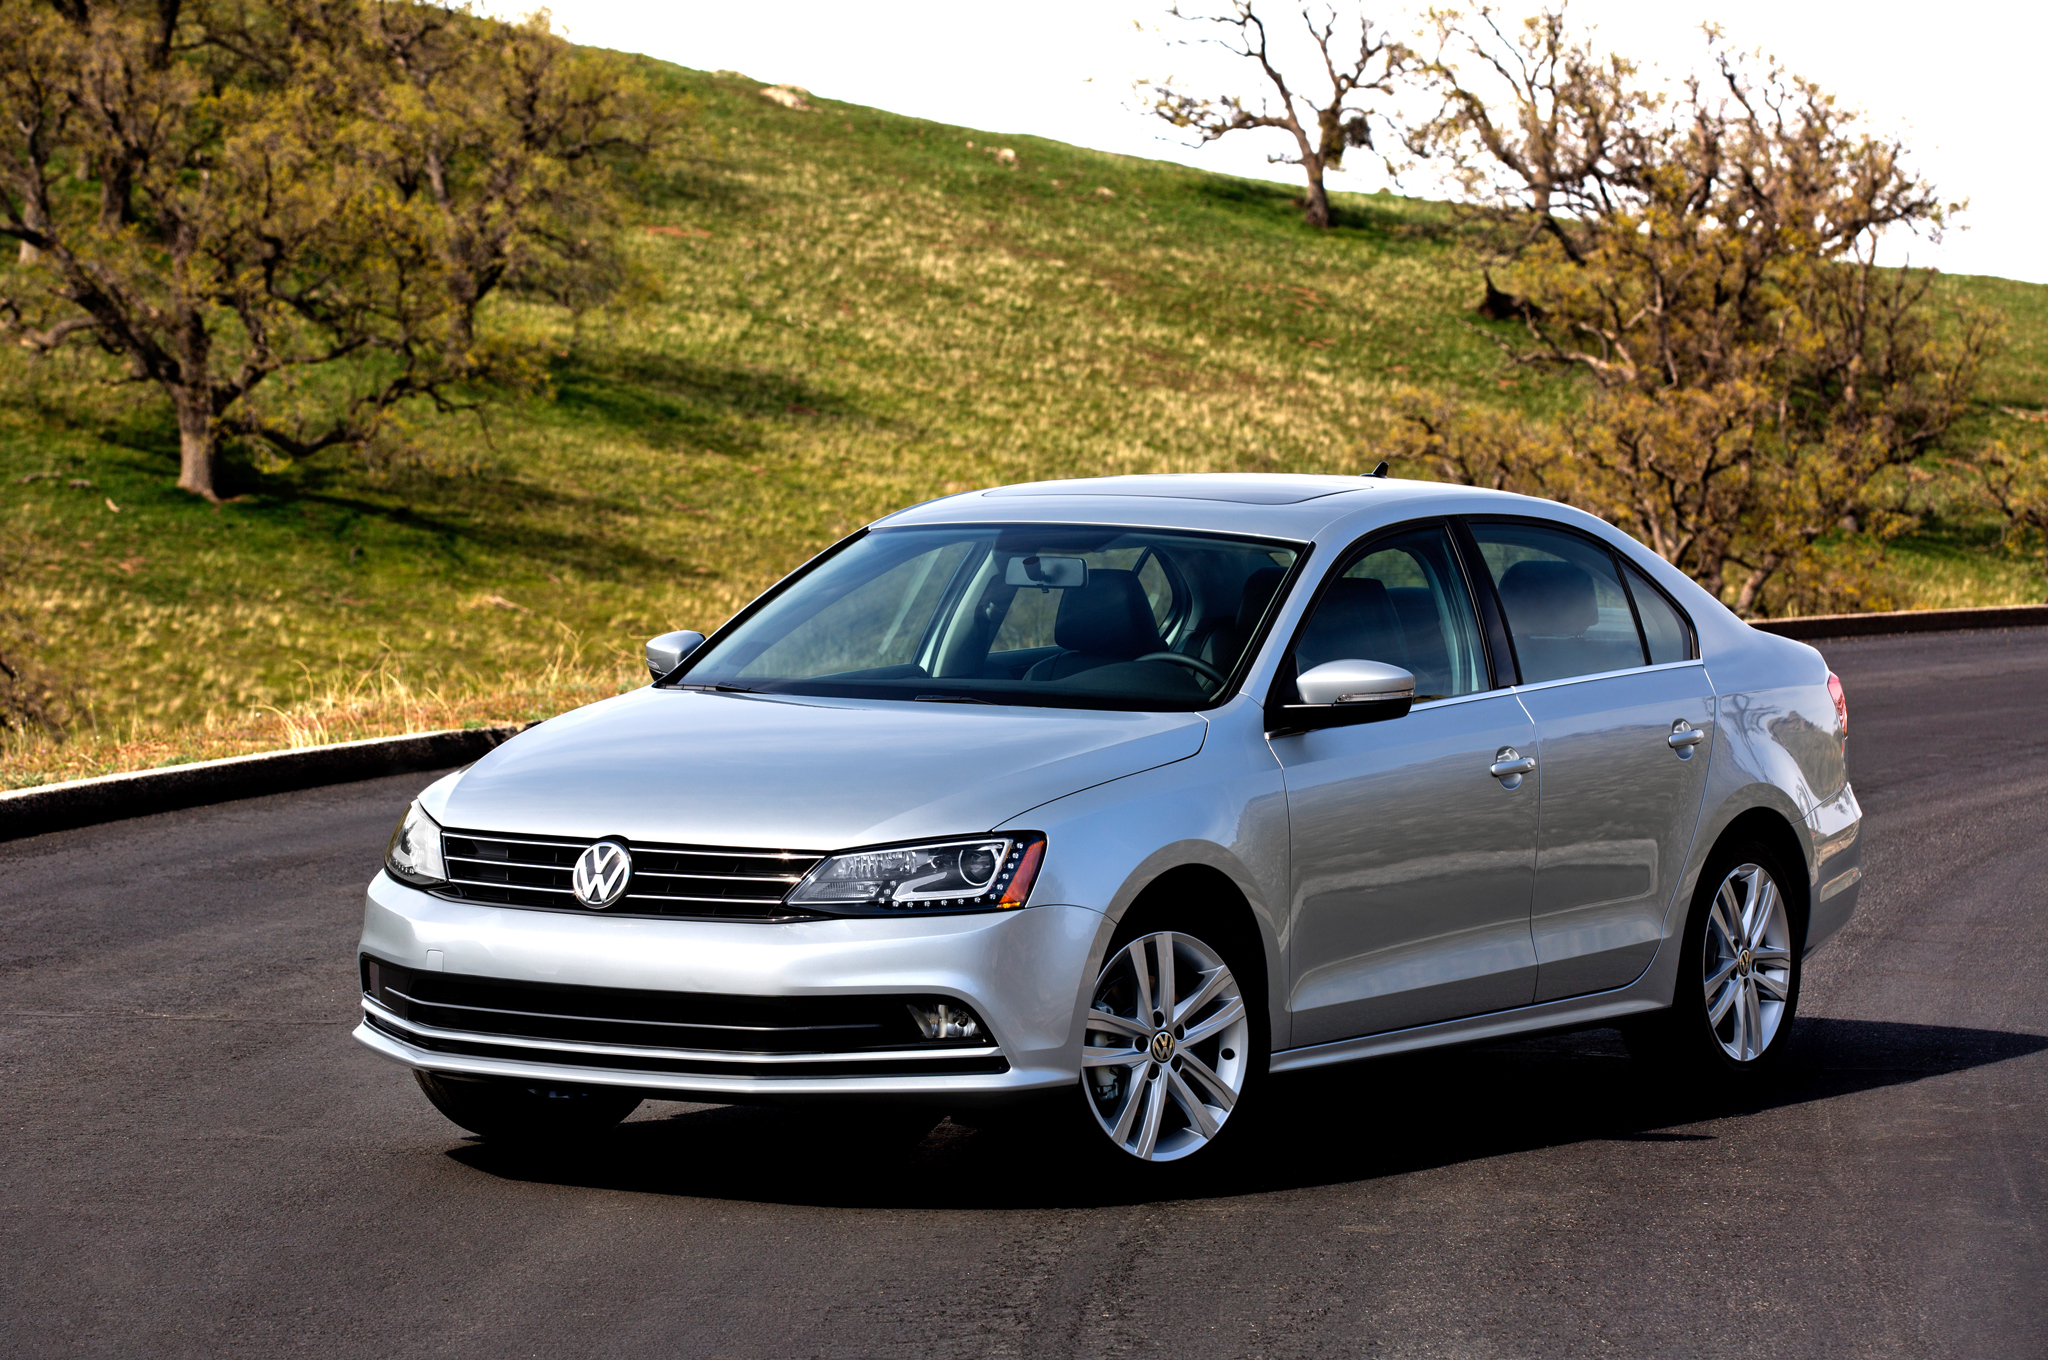 2015-Volkswagen-Jetta-front-three-quarter-021